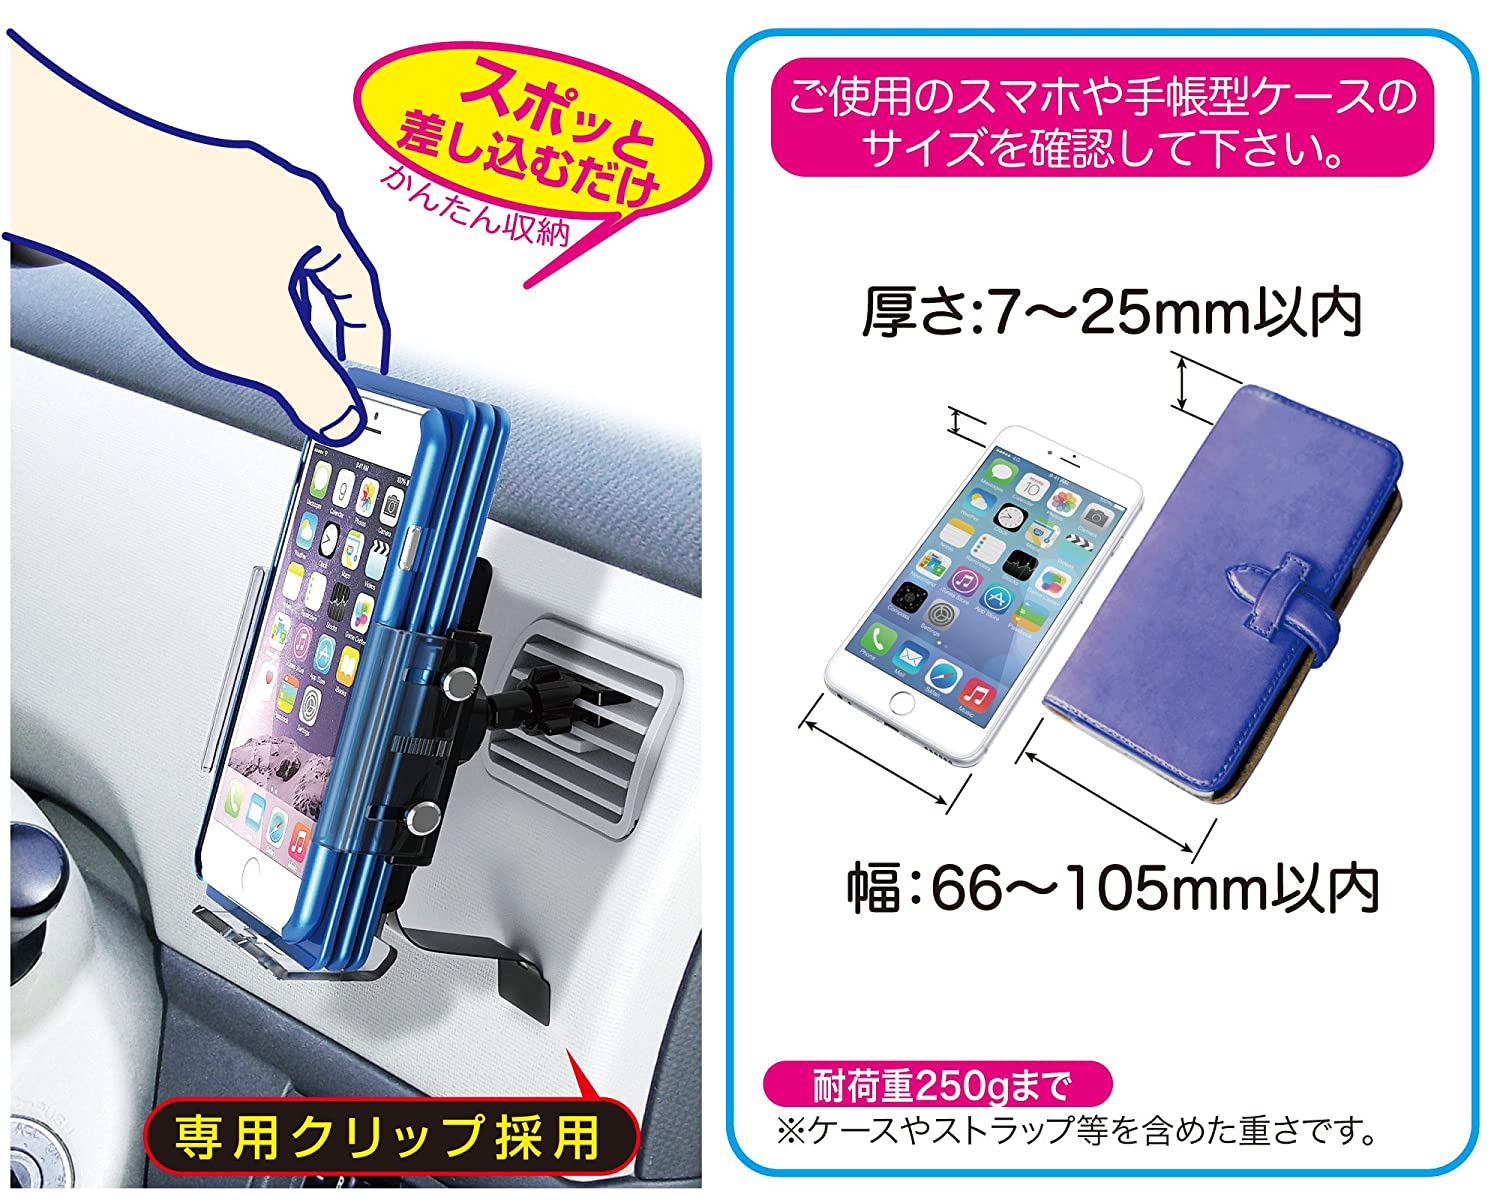 EXEA SEIKOSANGYO CO. LTD EC-175 Smartphone Holder For Car Compatible With Notebook-style Wallet Case IPhone Android Works With Large Smartphones Attaches To AC Vents Designed In Japan Black